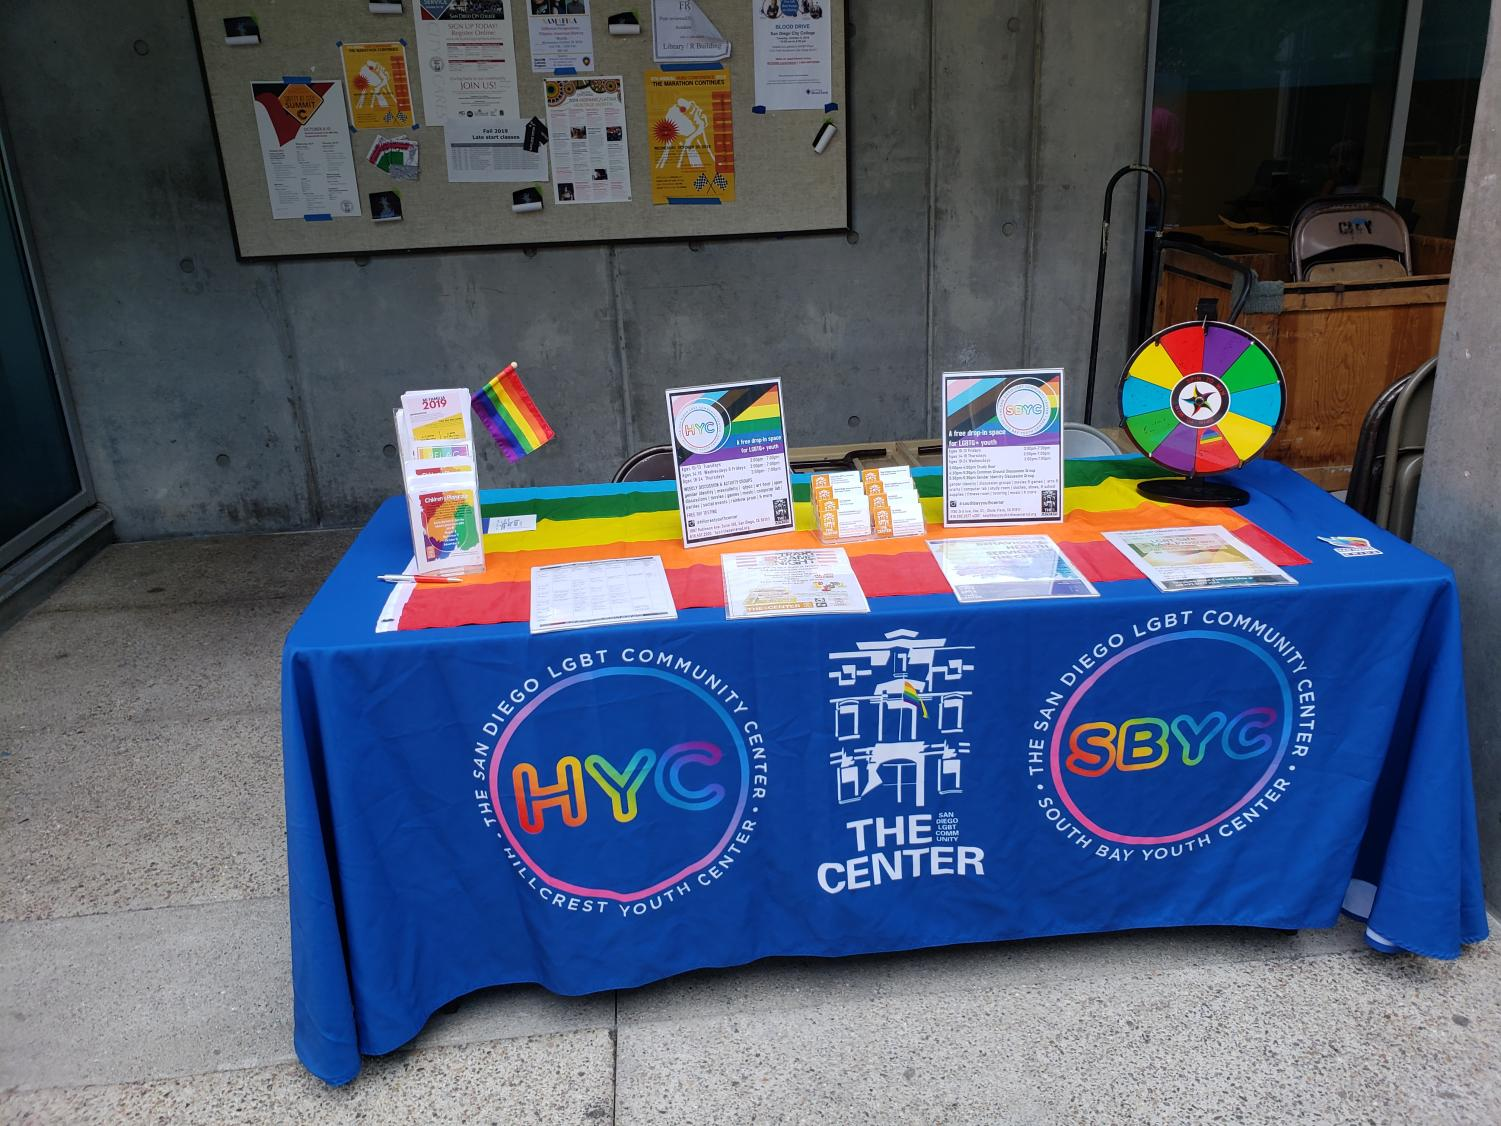 The San Diego LGBT Community Center was one of the groups offering resources to students at World Coming Out Day. Photo by Angel Cazares